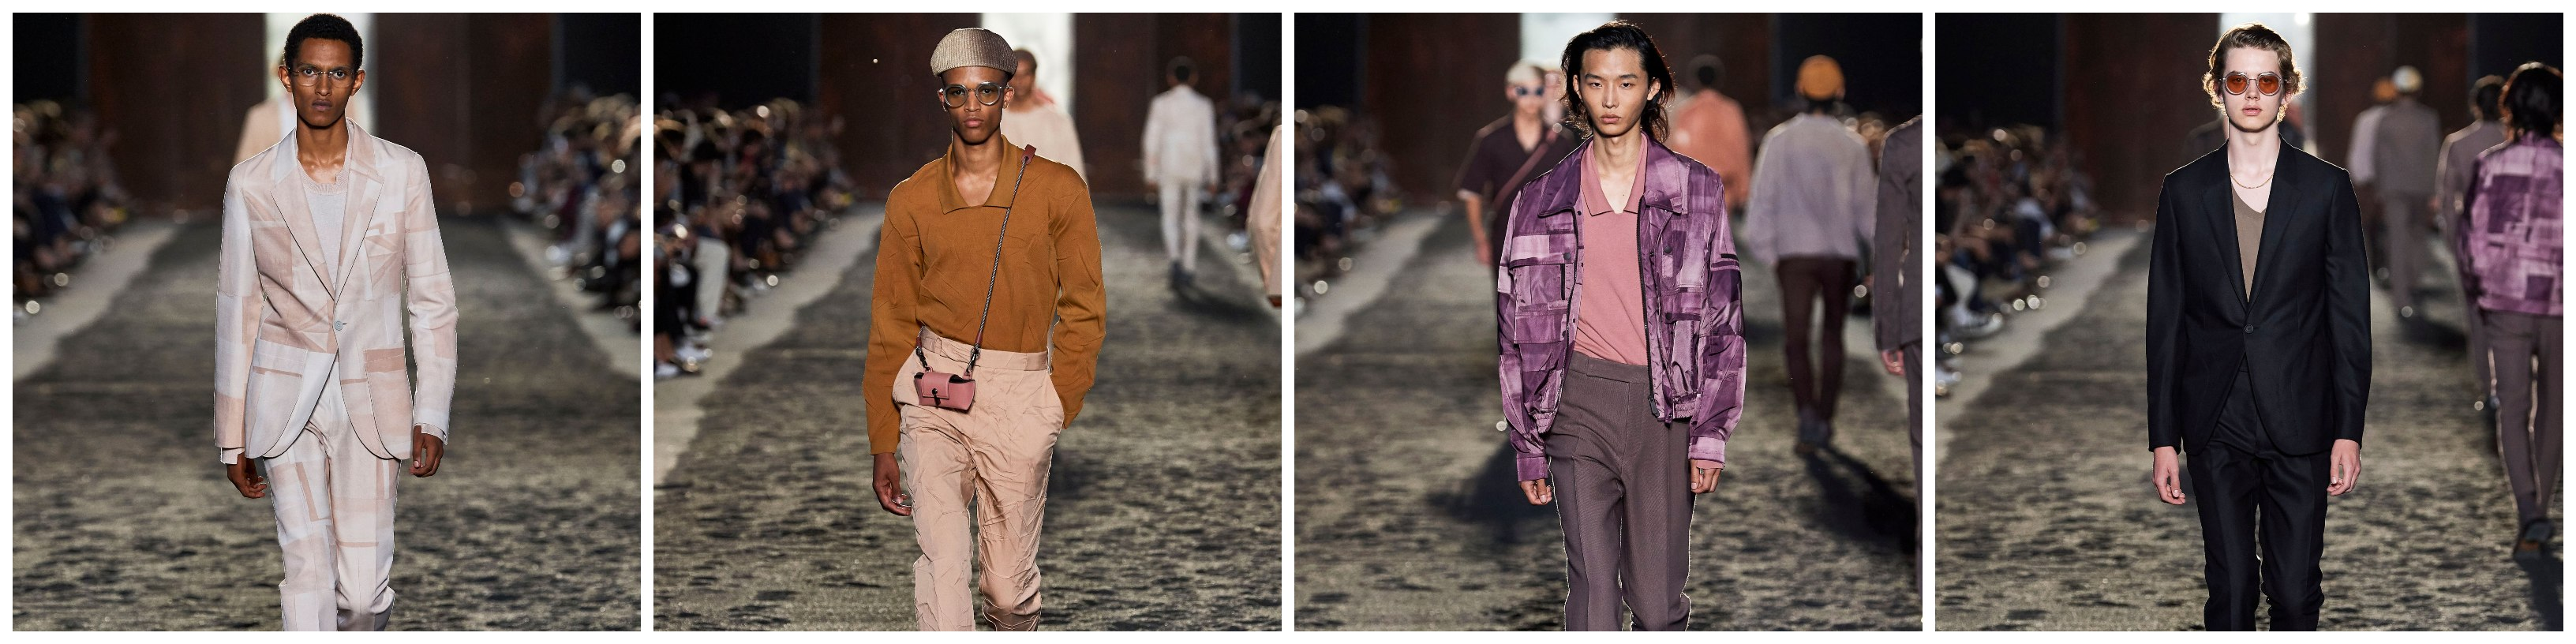 All the top looks showcasing the casual elegance of Zegna's Spring Summer 2020 collection